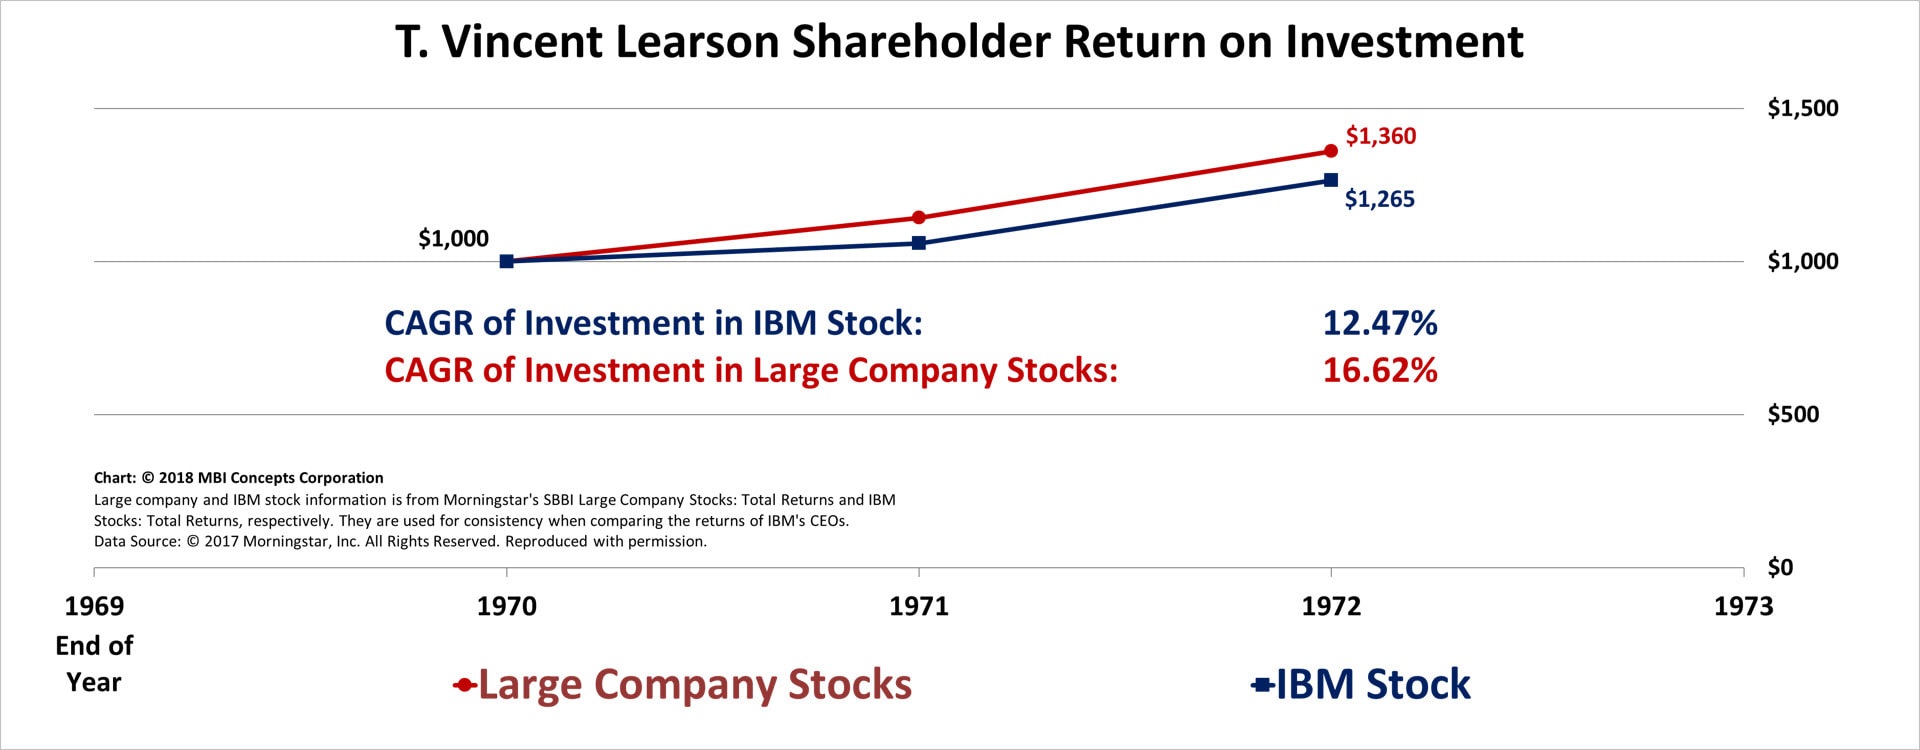 Line chart of T. Vincent Learson's (Vin Learson) Shareholder Returns from 1970 through 1971 compared with large company stocks.